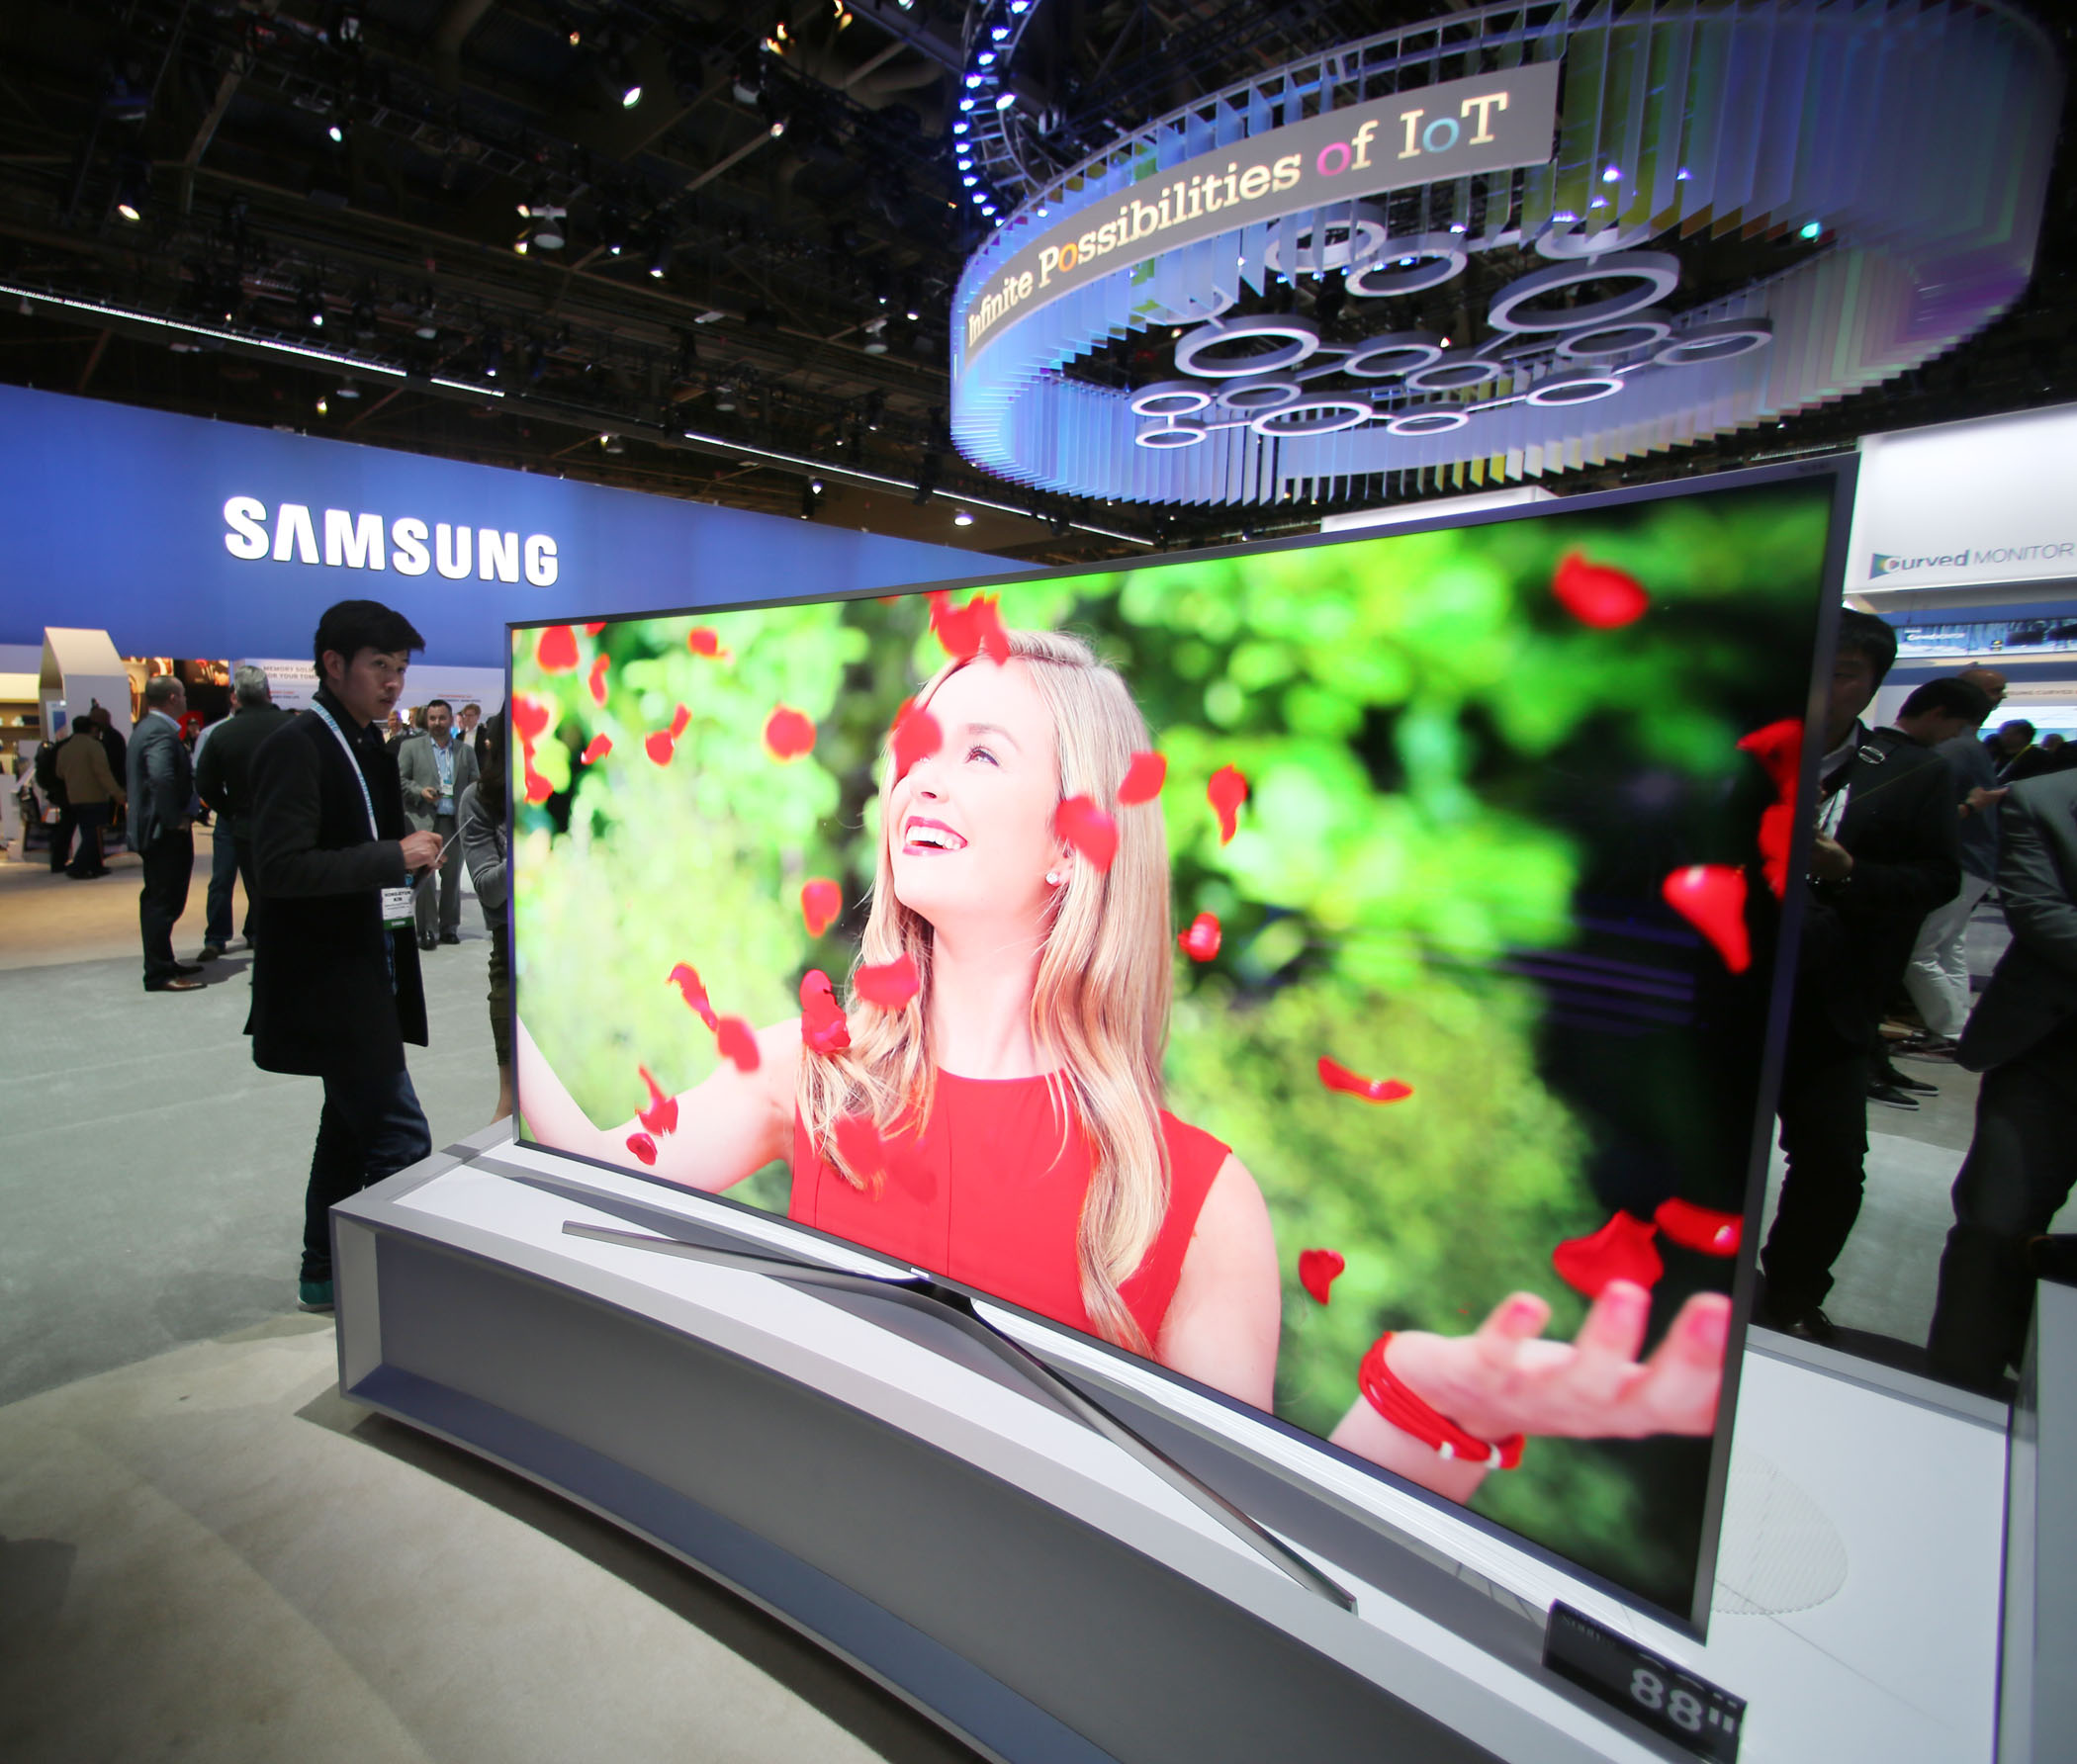 Samsung's 105 inch flexible SUHD TV won awards at CES 2015.